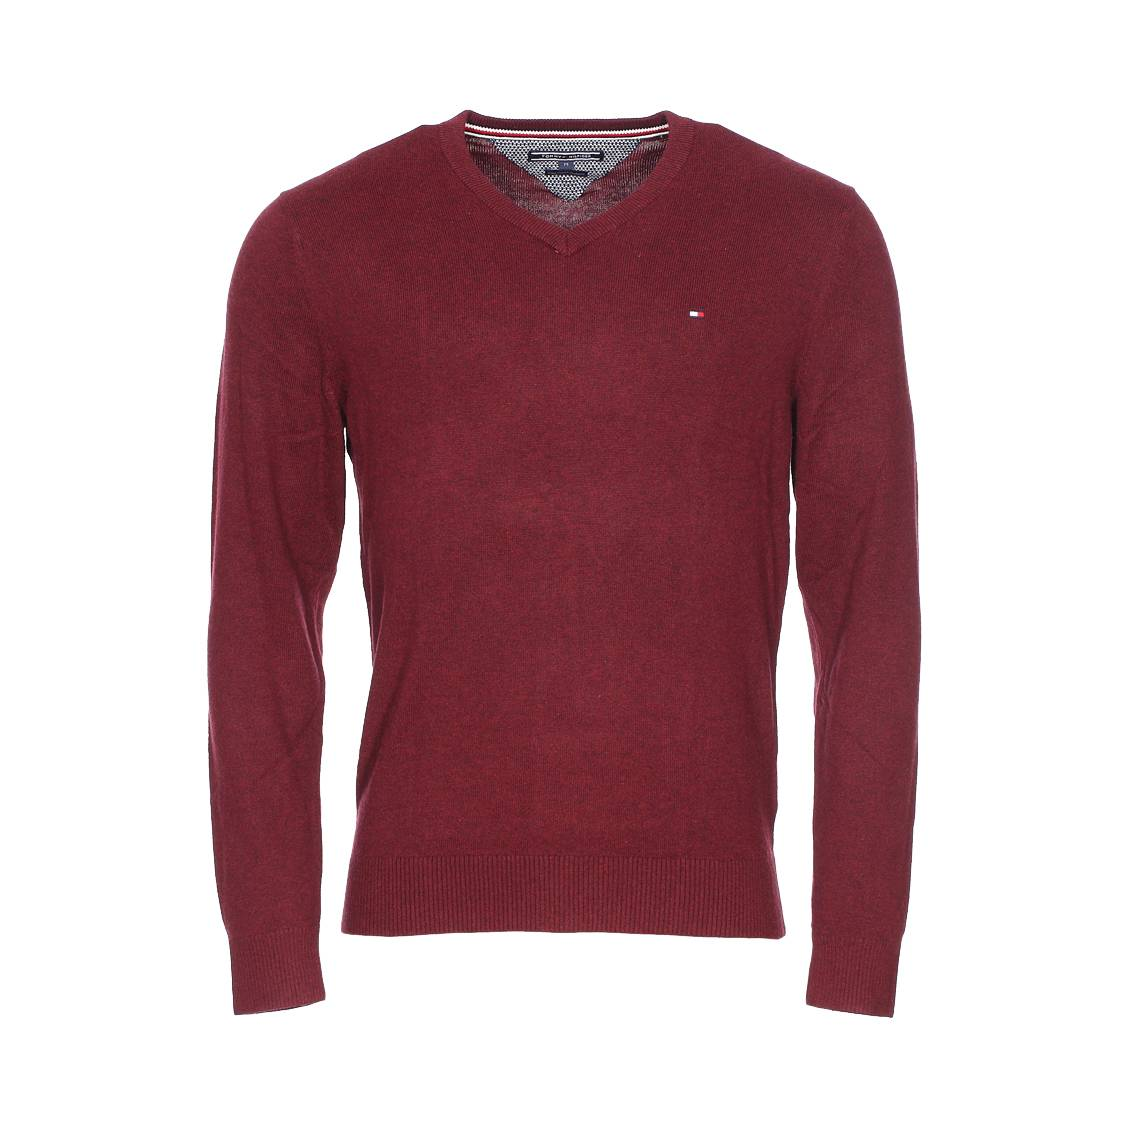 MW0MW03136 - Pull - Homme - Rouge - Taille: XXLTommy Hilfiger